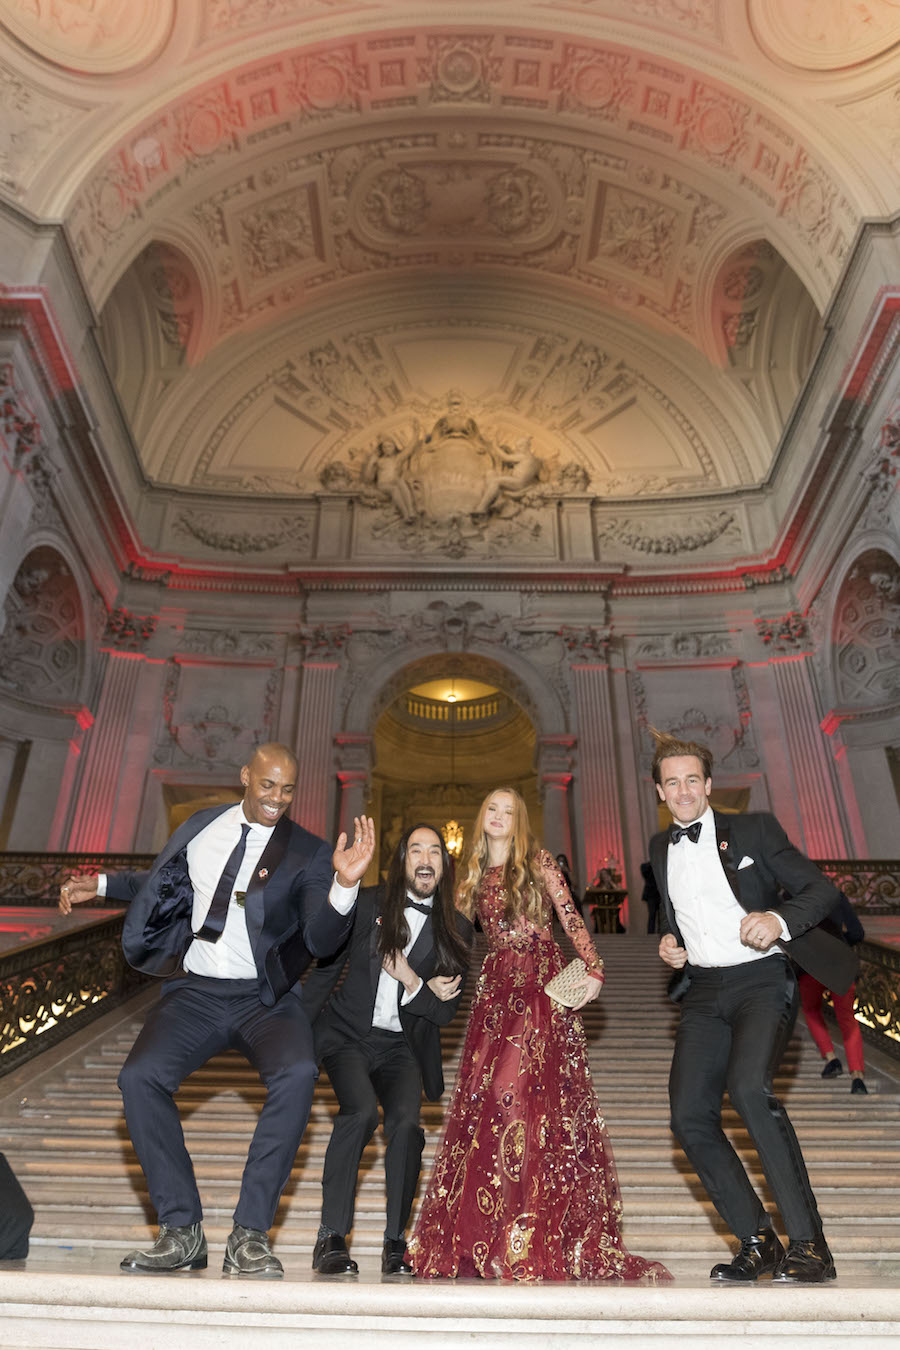 Mehcad Brooks, Steve Aoki, Devon Aoki and James van der Beek at the Gala on Saturday night